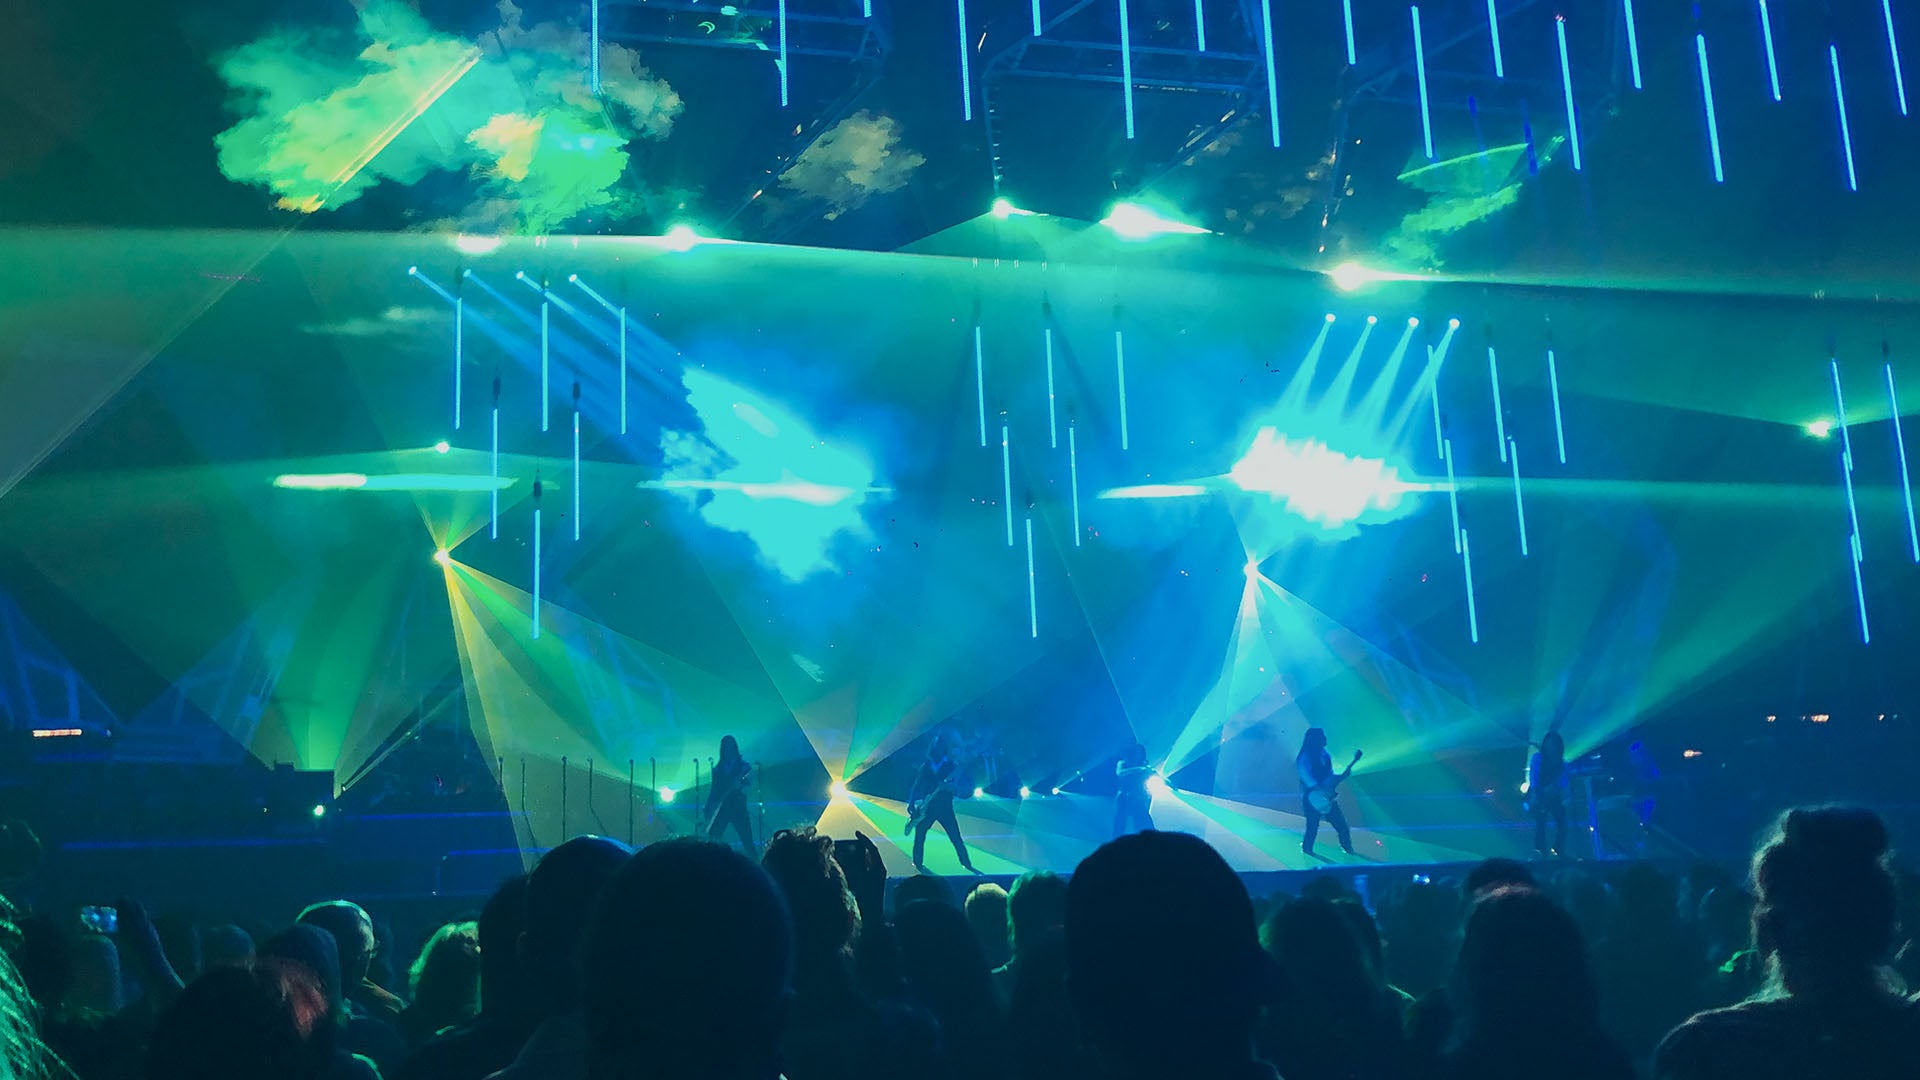 Trans-Siberian Orchestra Winter Tour 2019 Laser Spectacular!